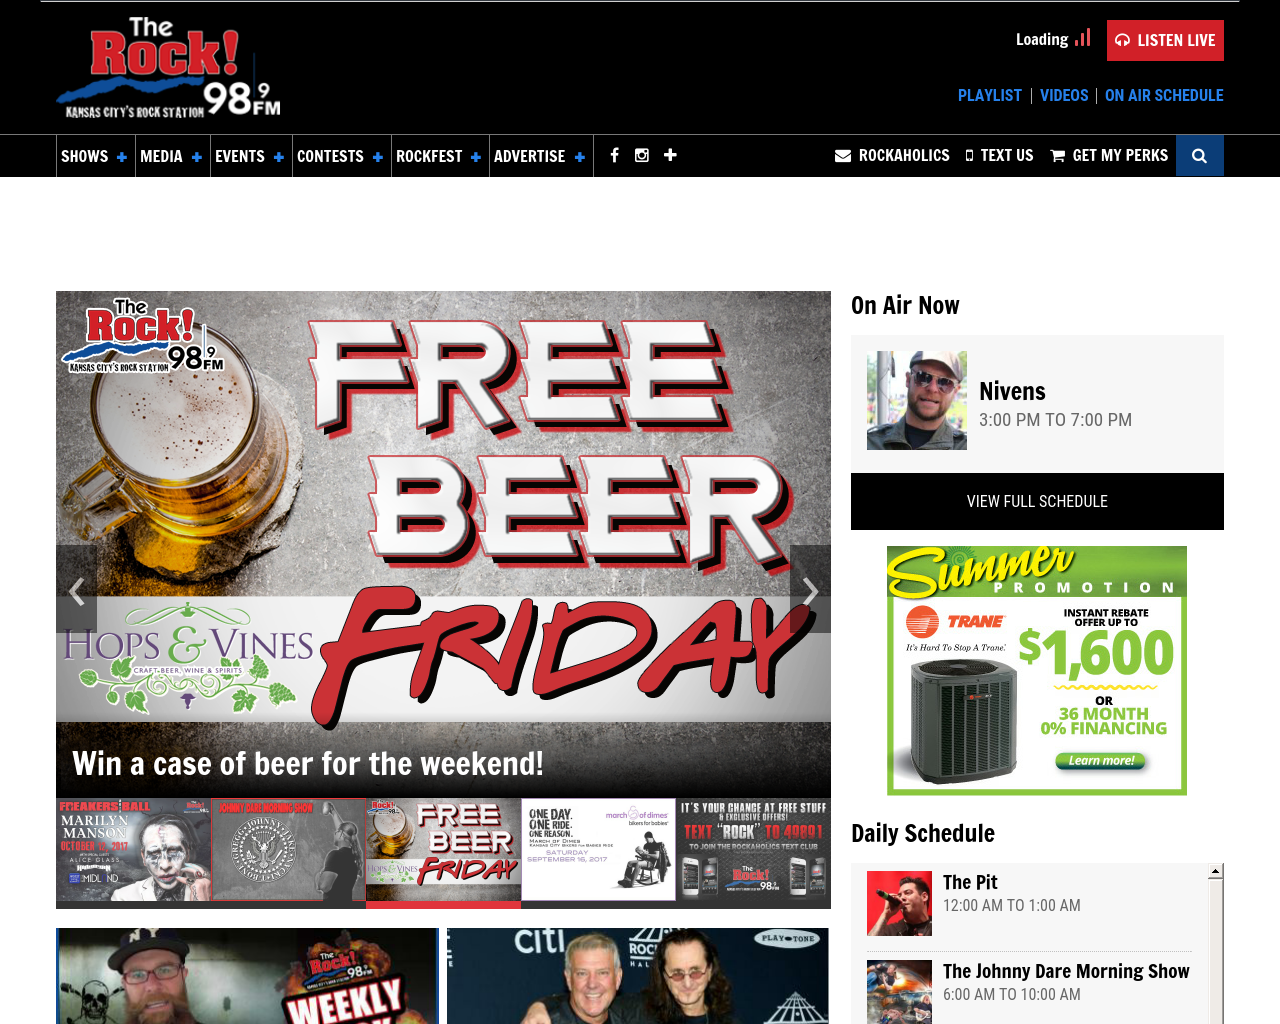 989-The-Rock-Advertising-Reviews-Pricing